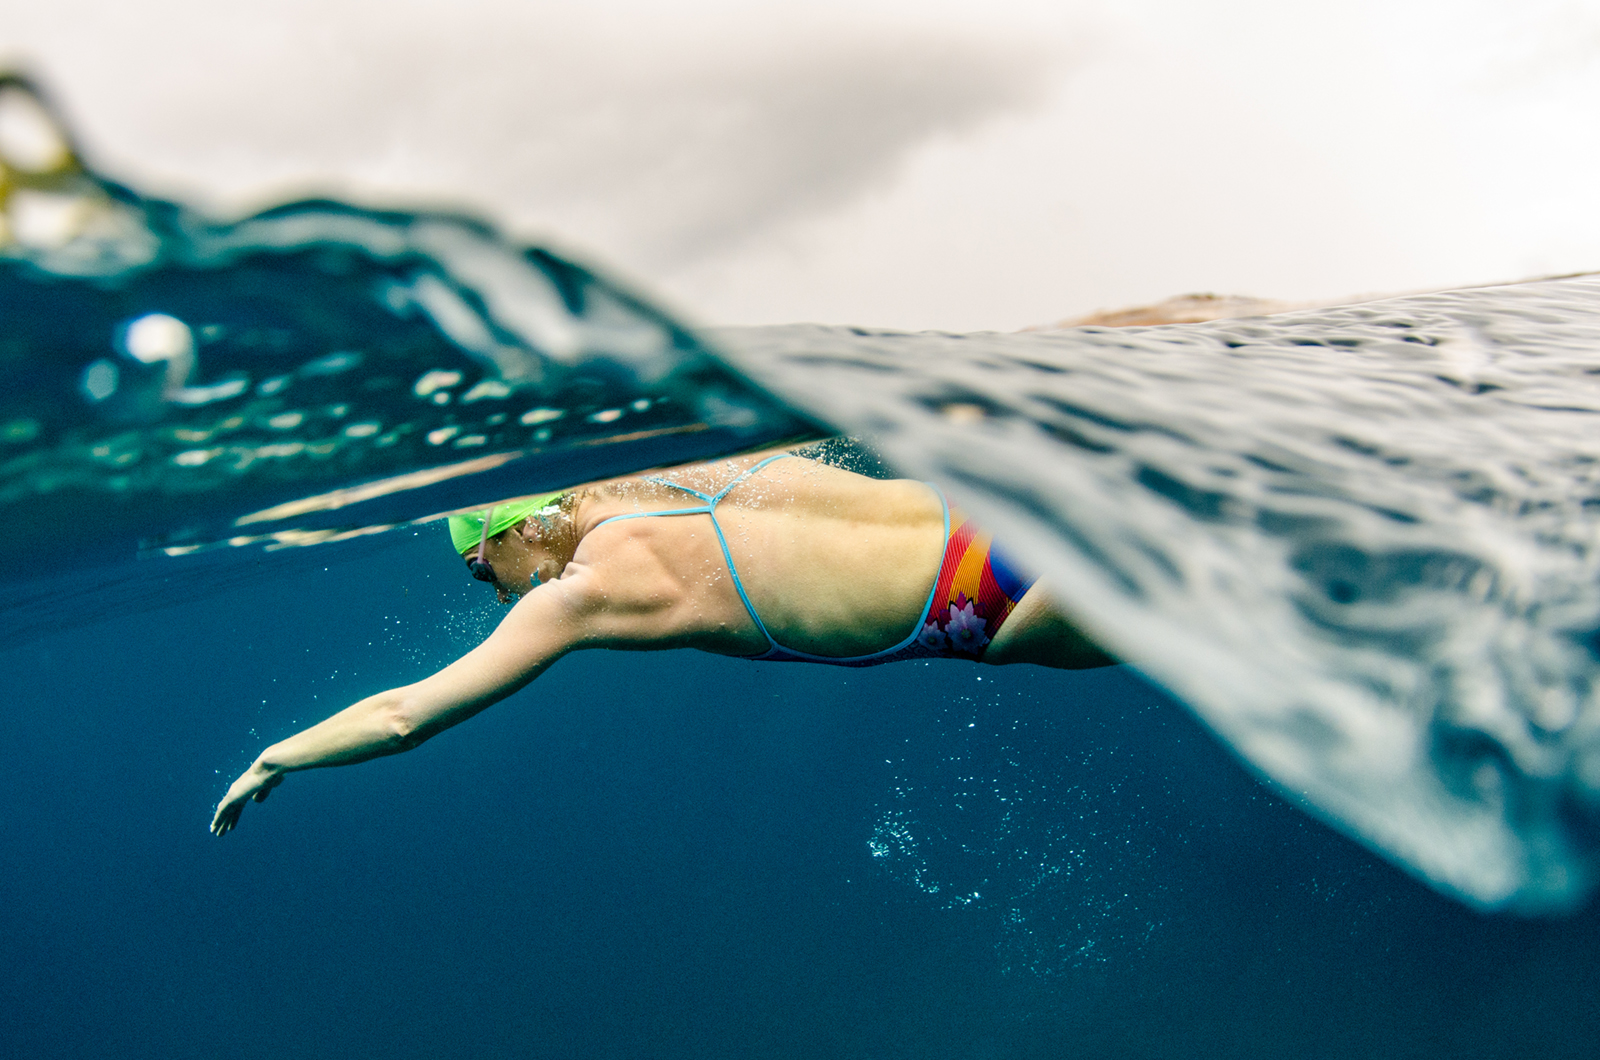 Heather Perry's underwater image is a half in the water half out shot of a swimmer doing the breaststroke with clouds looming overhead